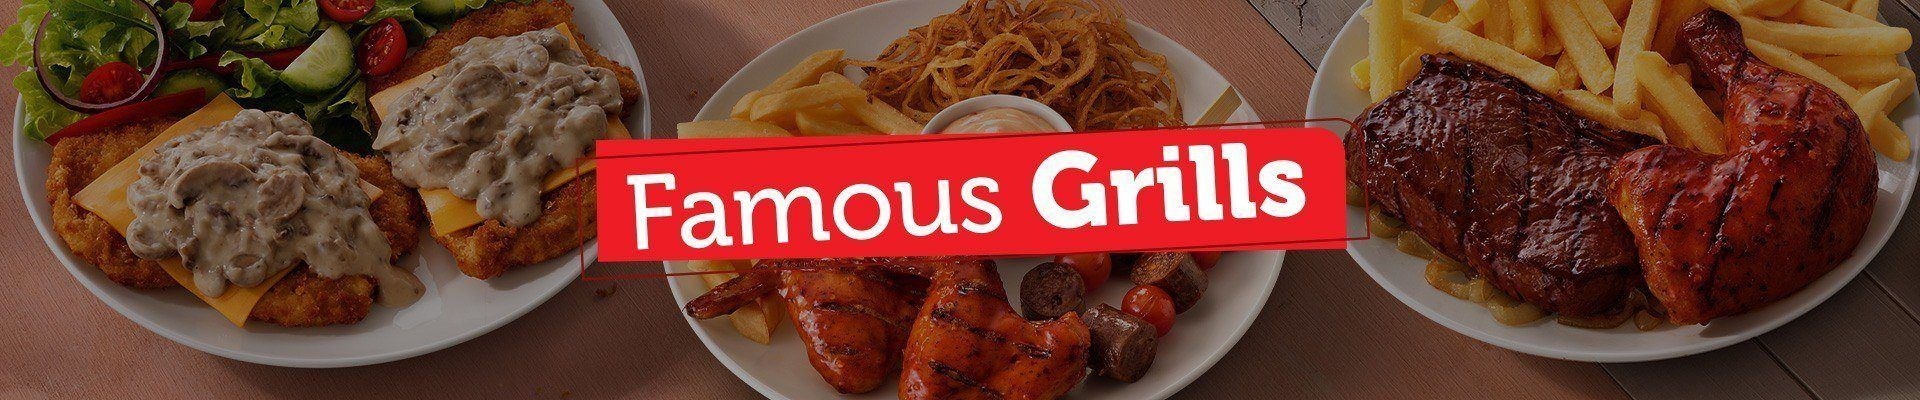 Famous Grills Header Image